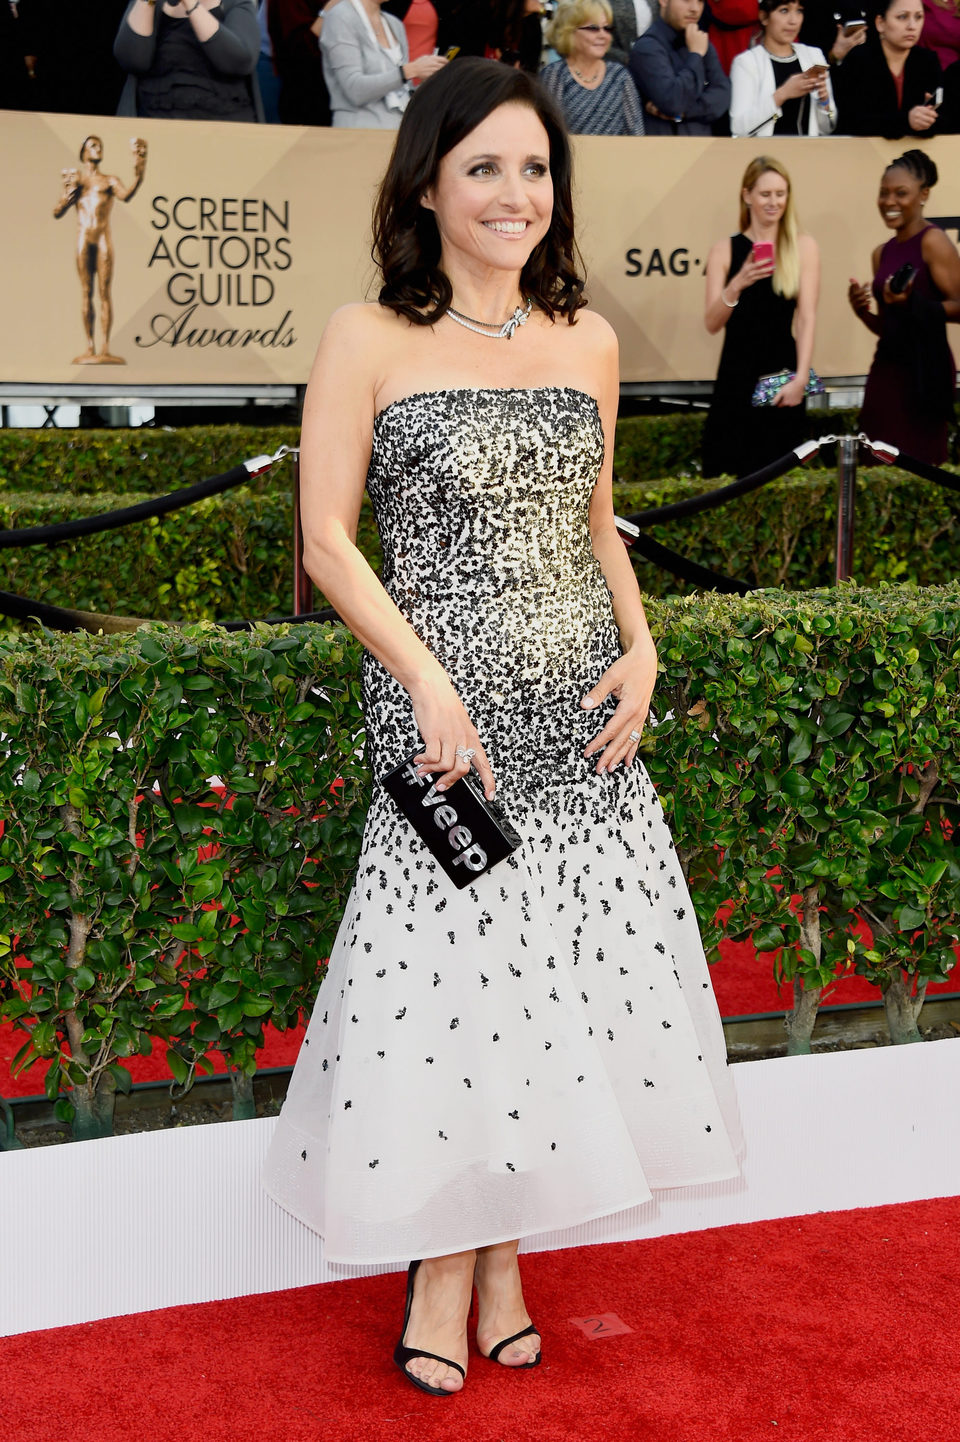 Julia Louis-Dreyfus in red carpet of SAG Awards 2016